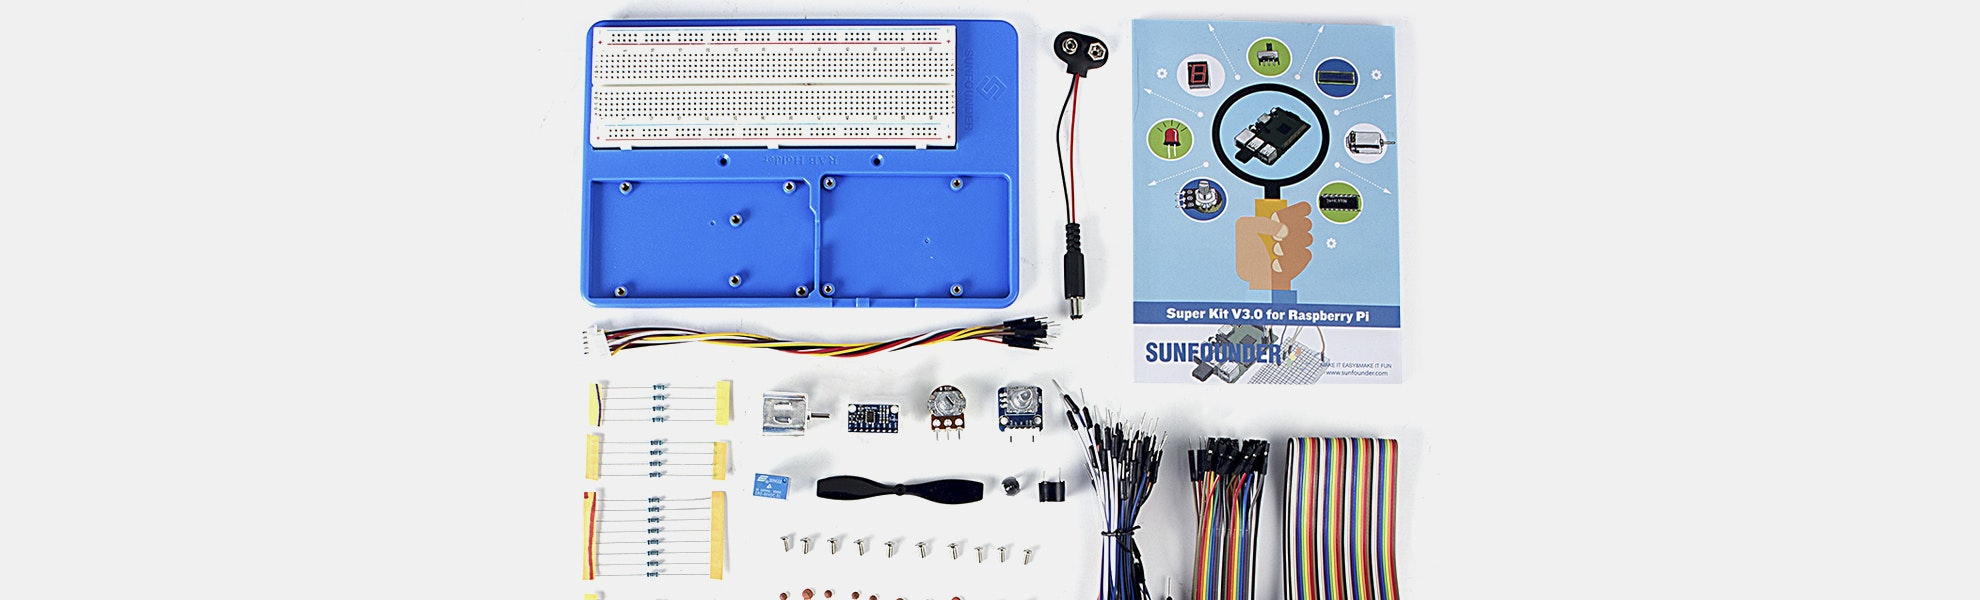 SunFounder Starter Learning Kit V3 for Raspberry Pi